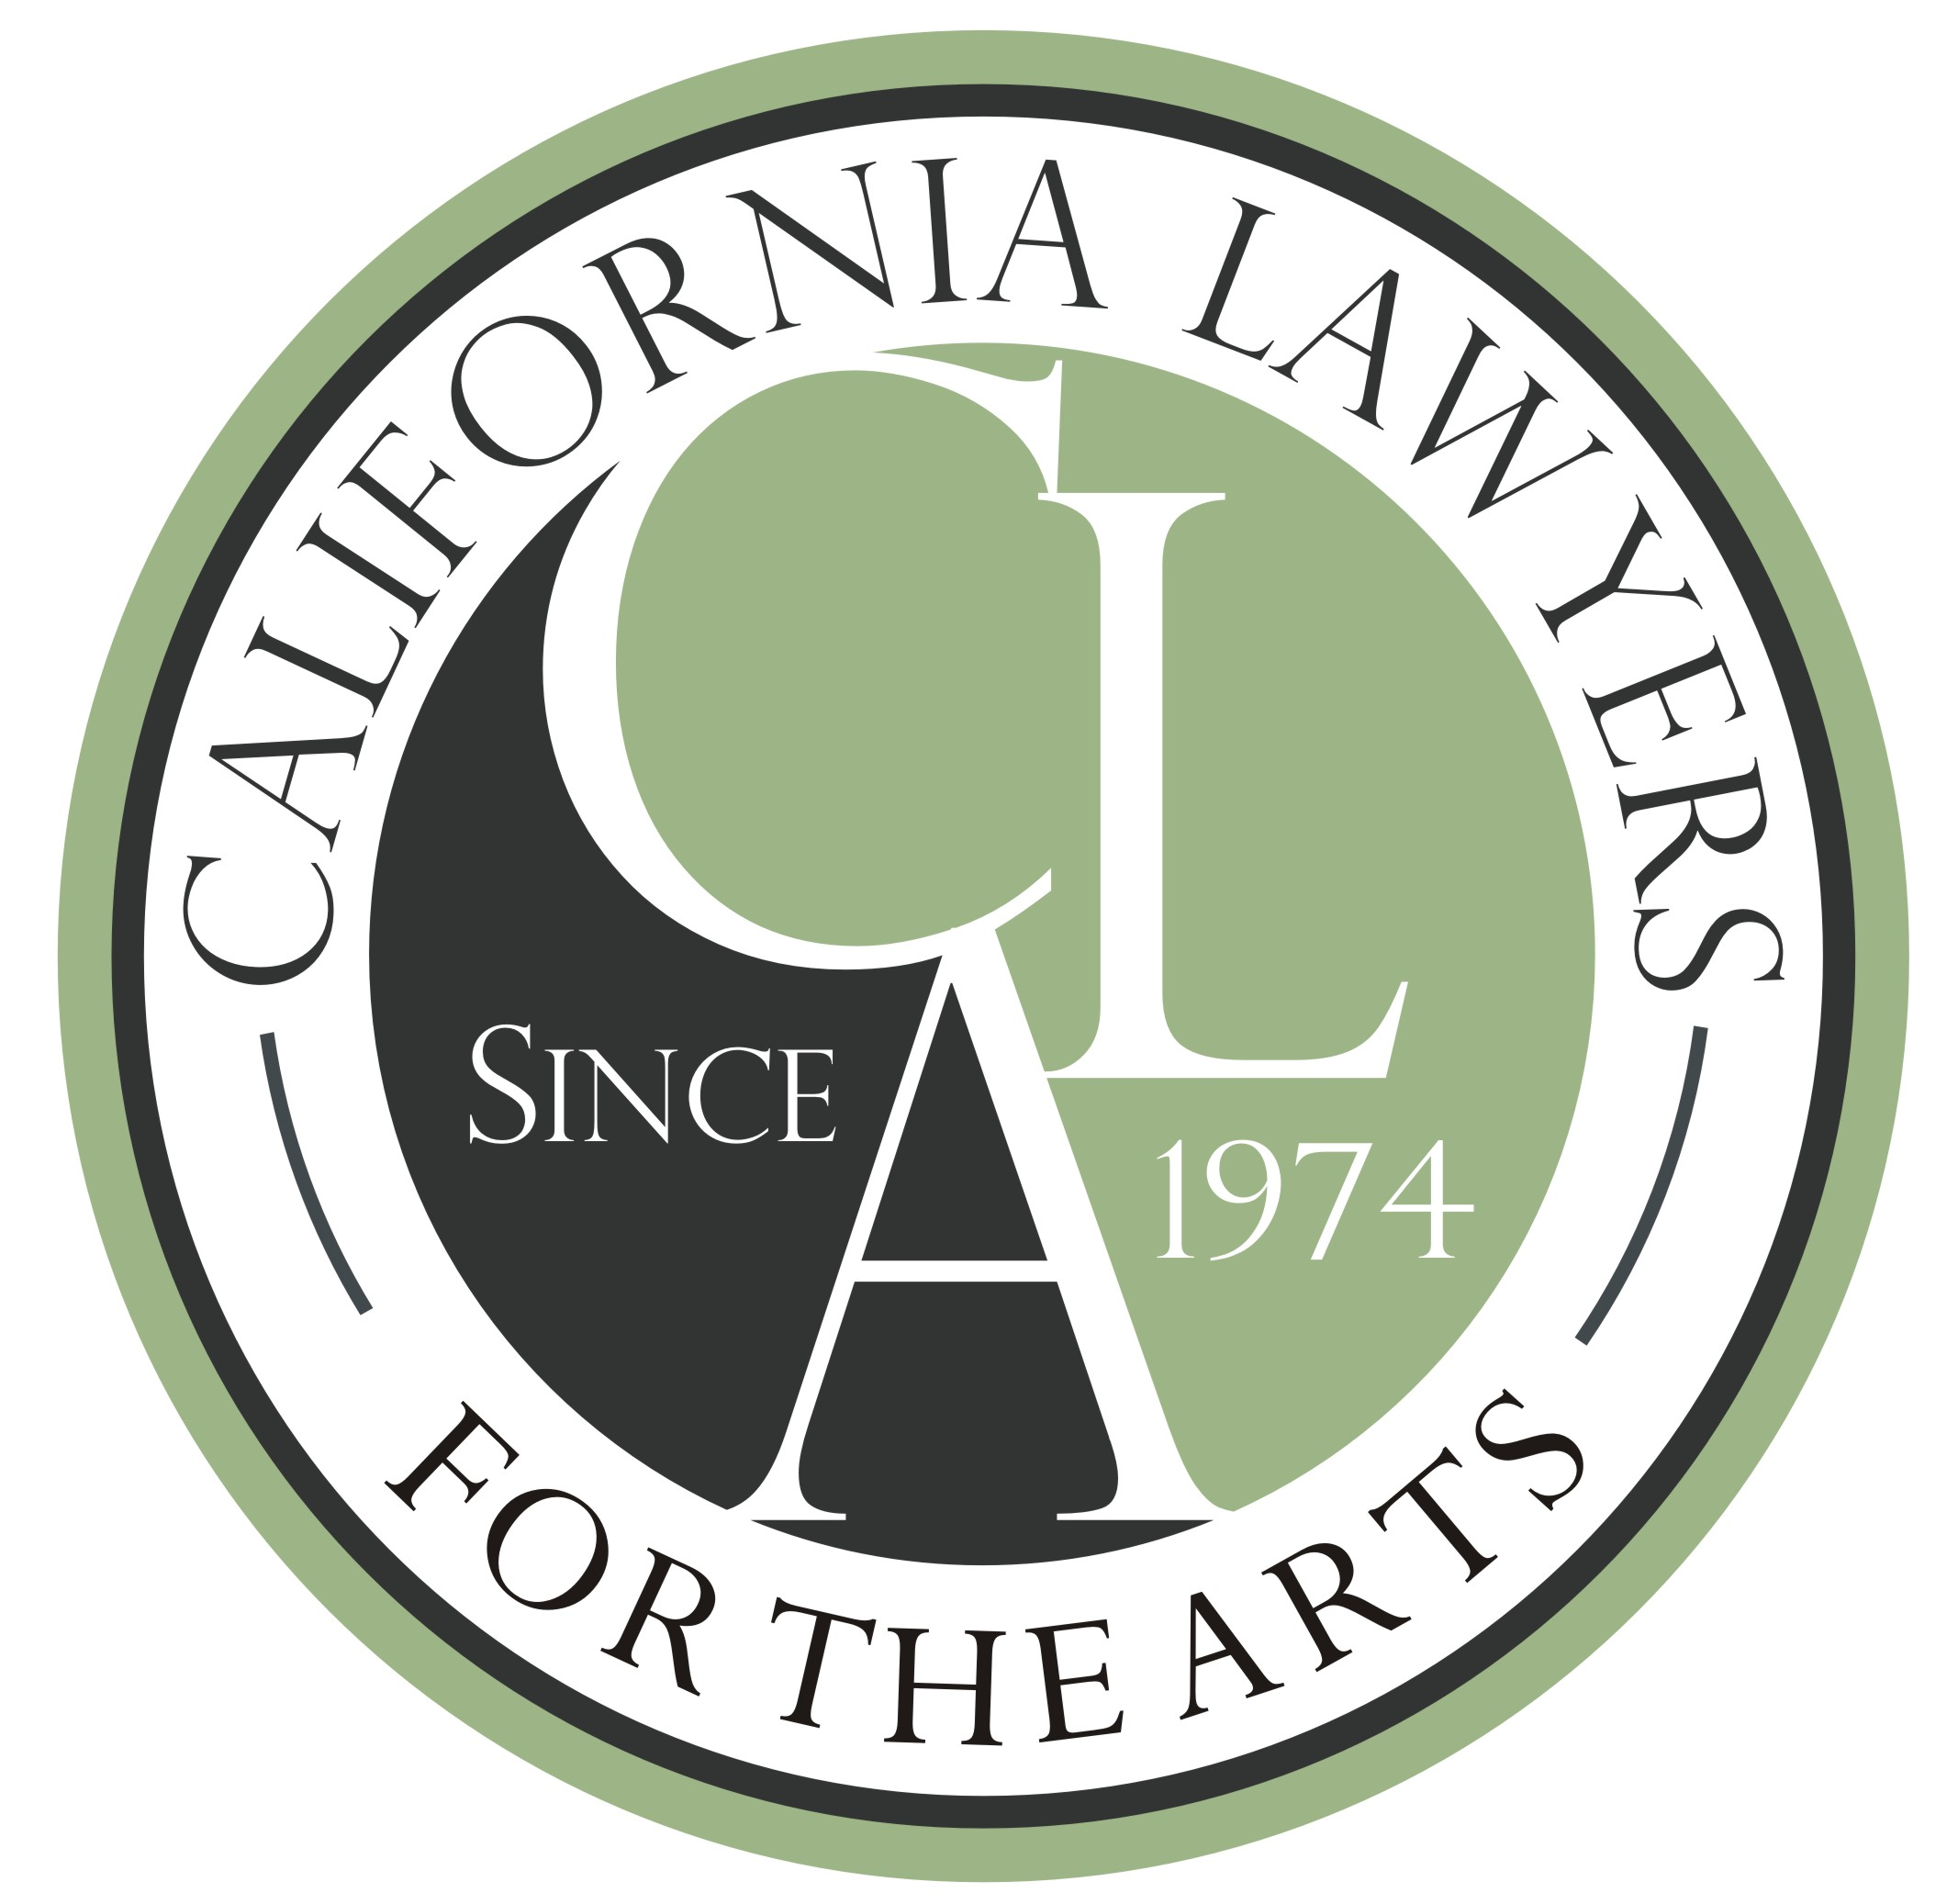 tickets for copyright law in sacramento from showclix